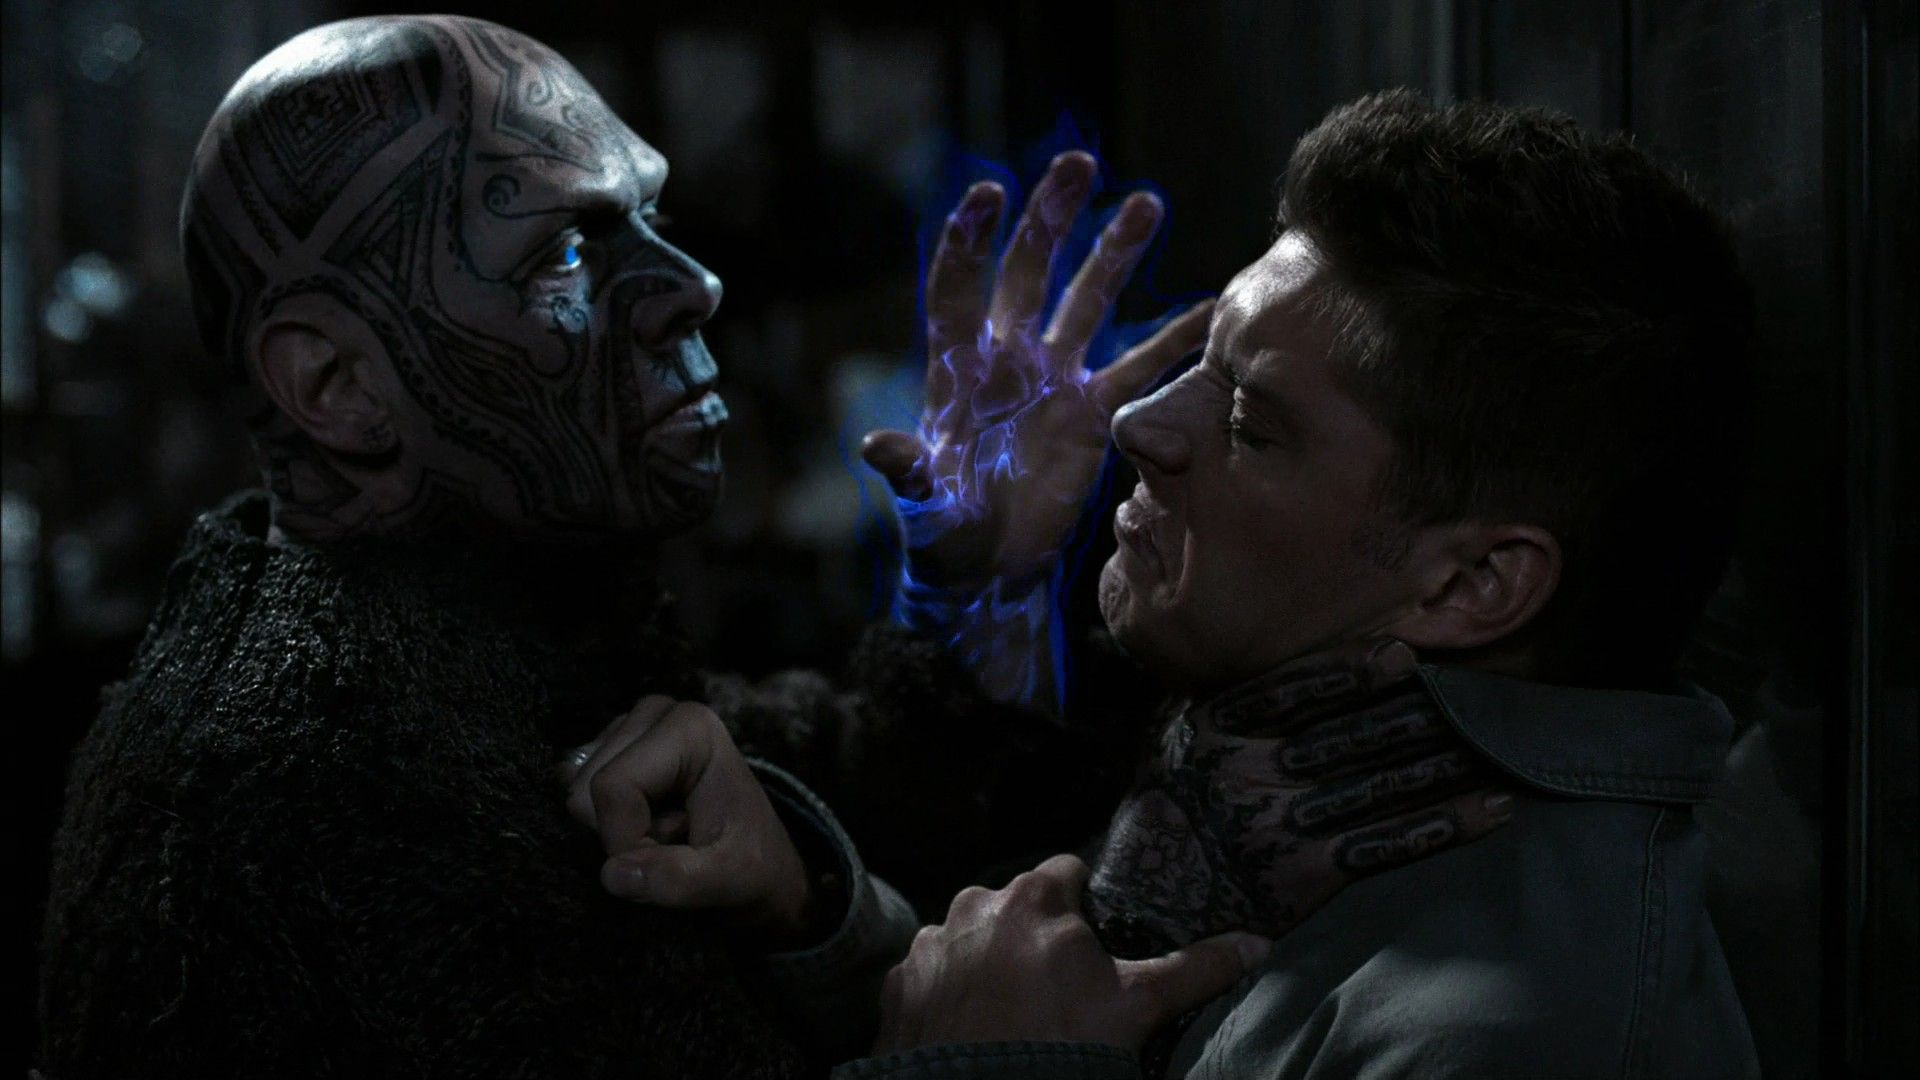 A vengeful Djinn, from the television show Supernatural.